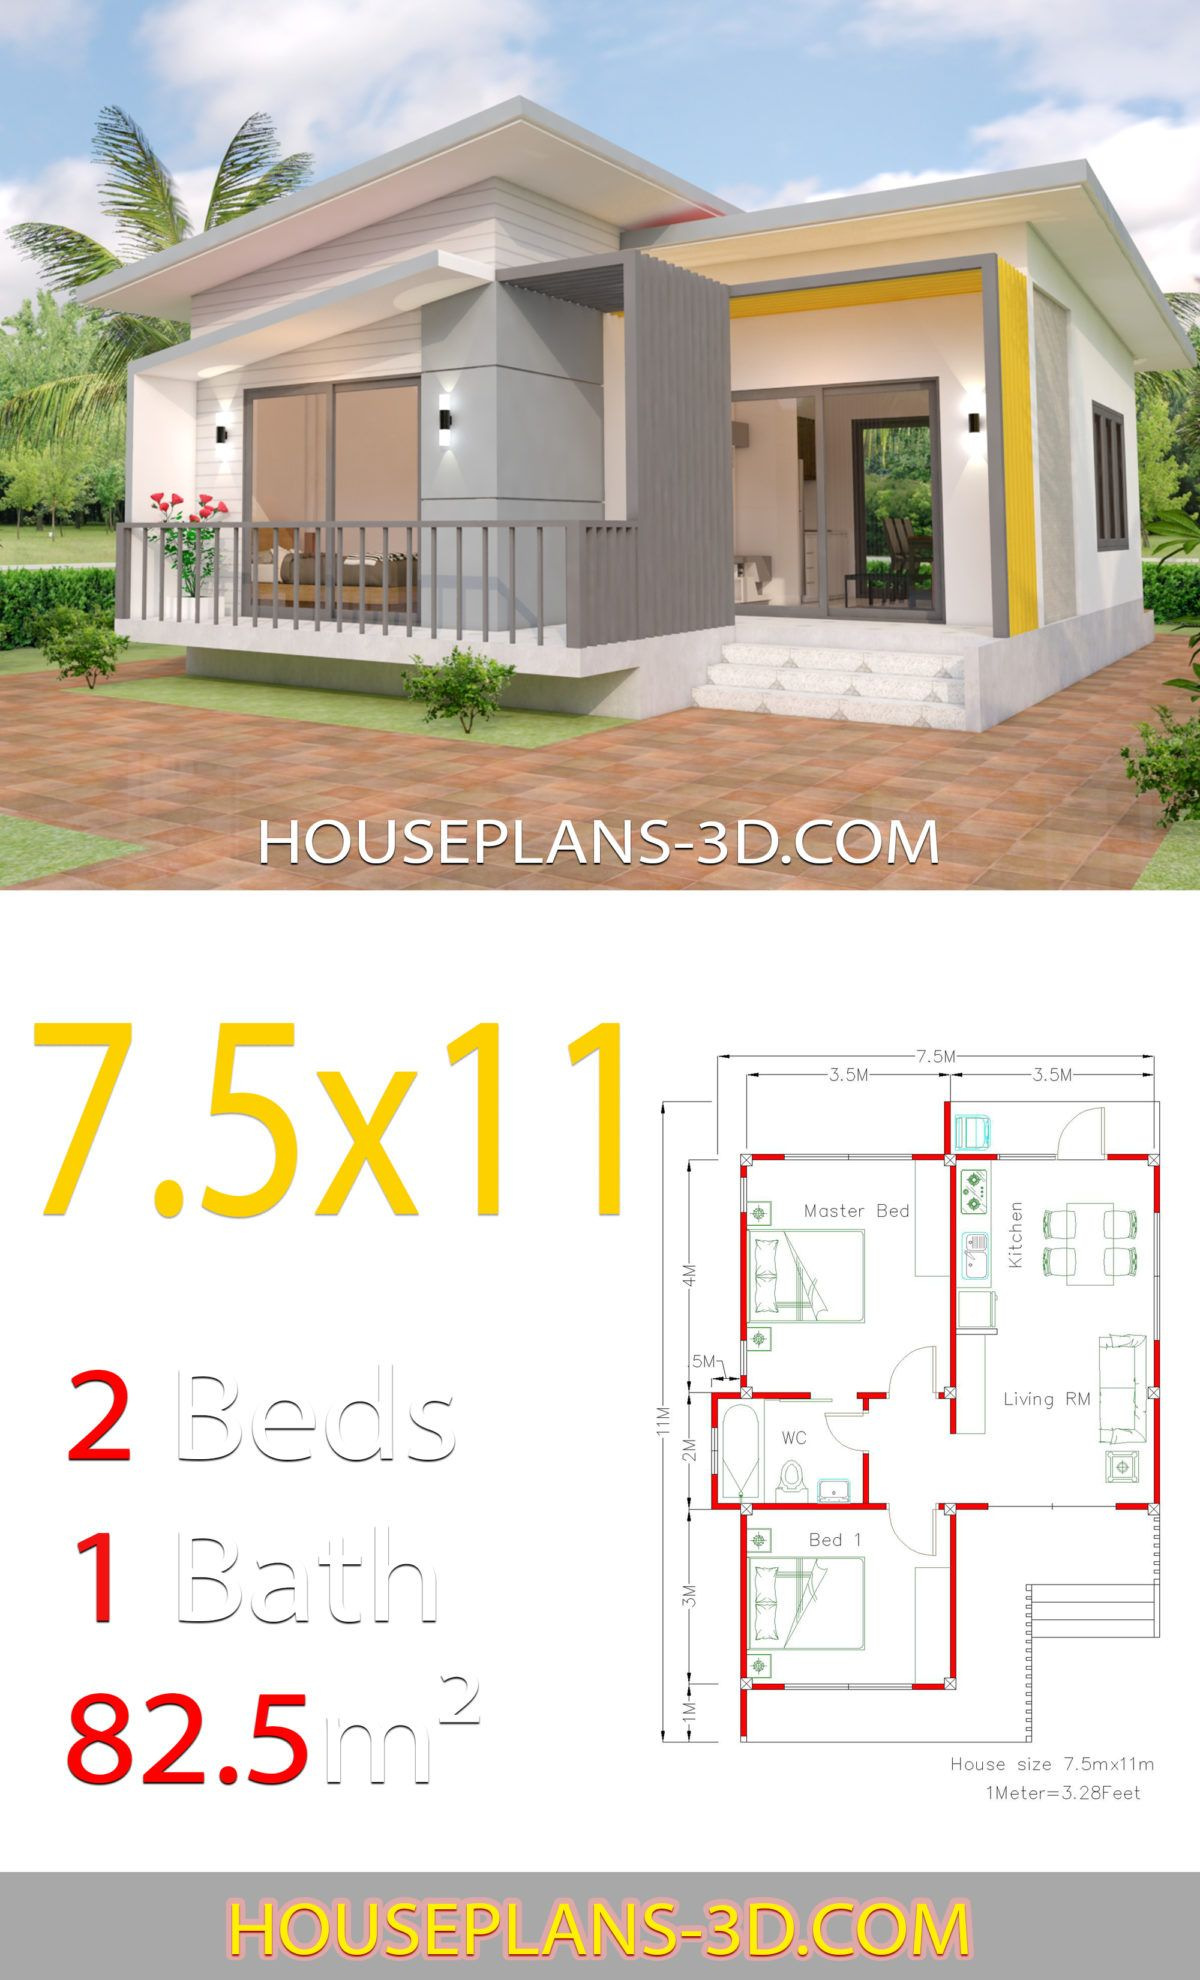 House Plans 7 5x11 With 2 Bedrooms Full Plans House Plans 3d In 2020 Bungalow House Plans Small House Design Plans House Plans